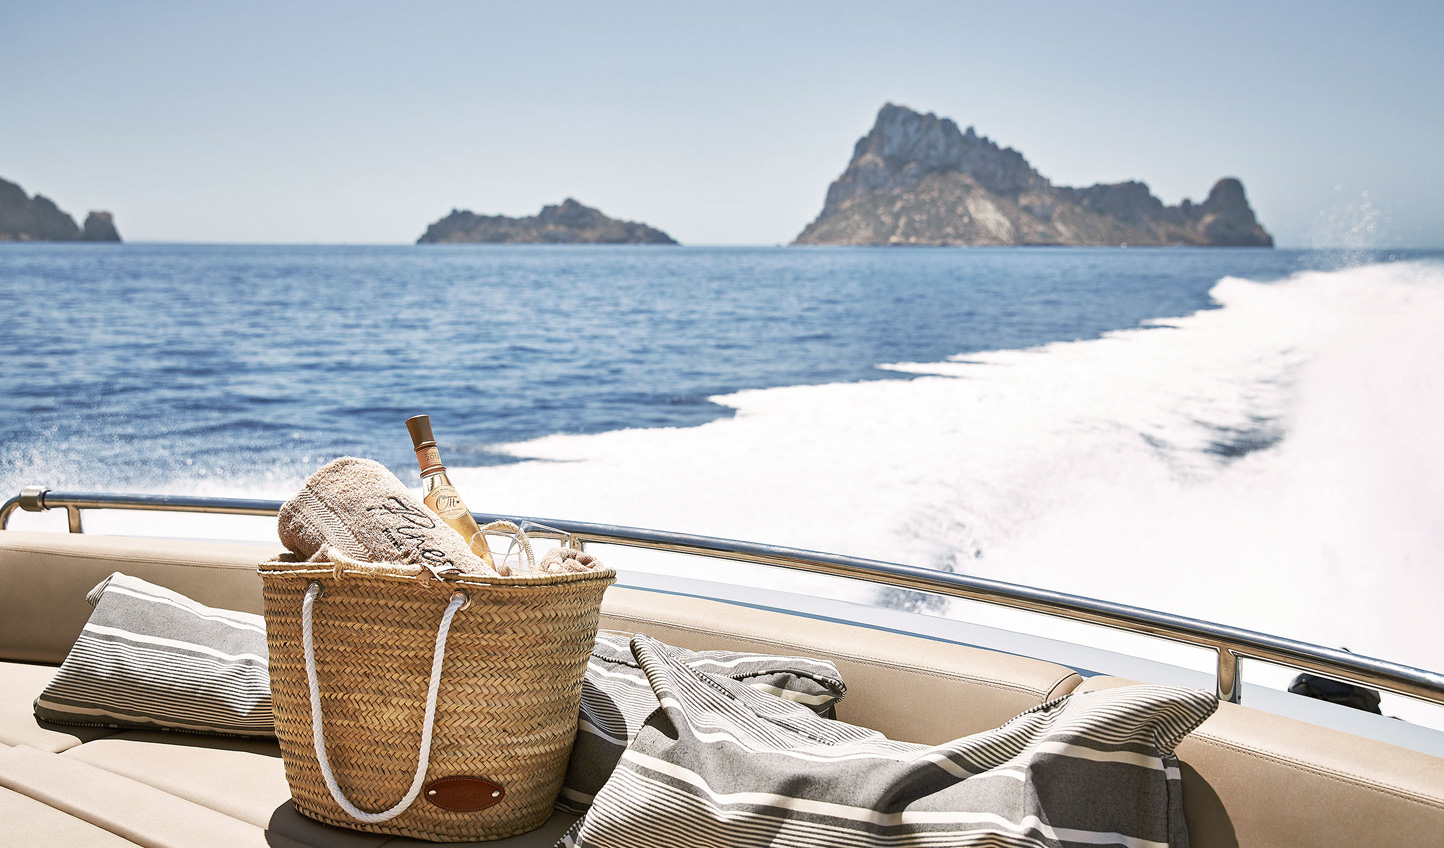 Pack a bottle and set sail in search of a quiet cove for the day